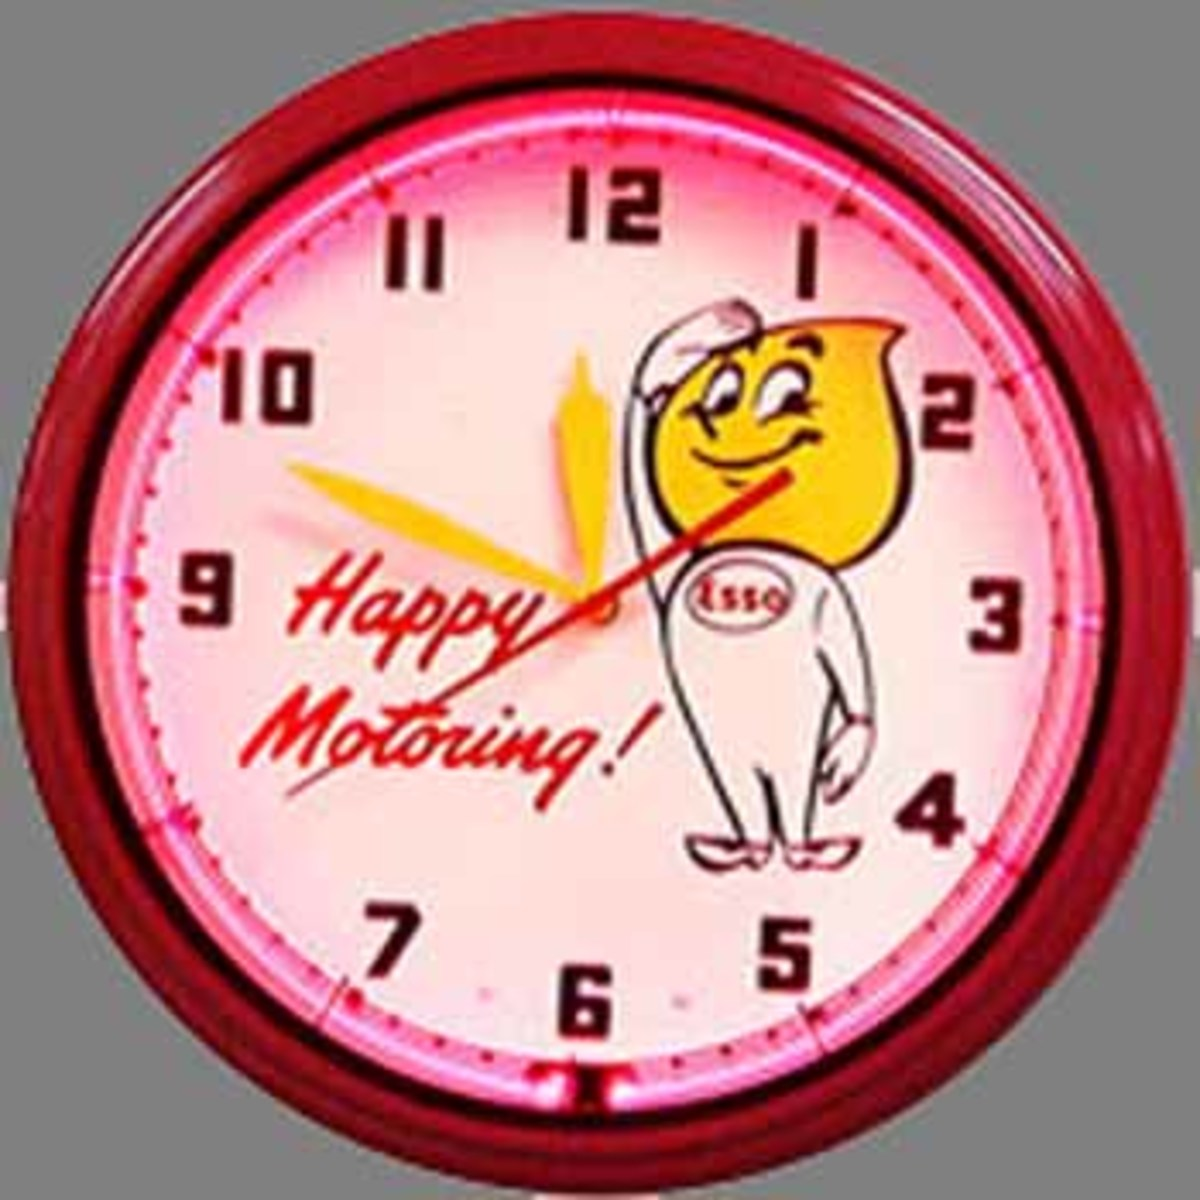 Happy Motoring...to everyone out there!